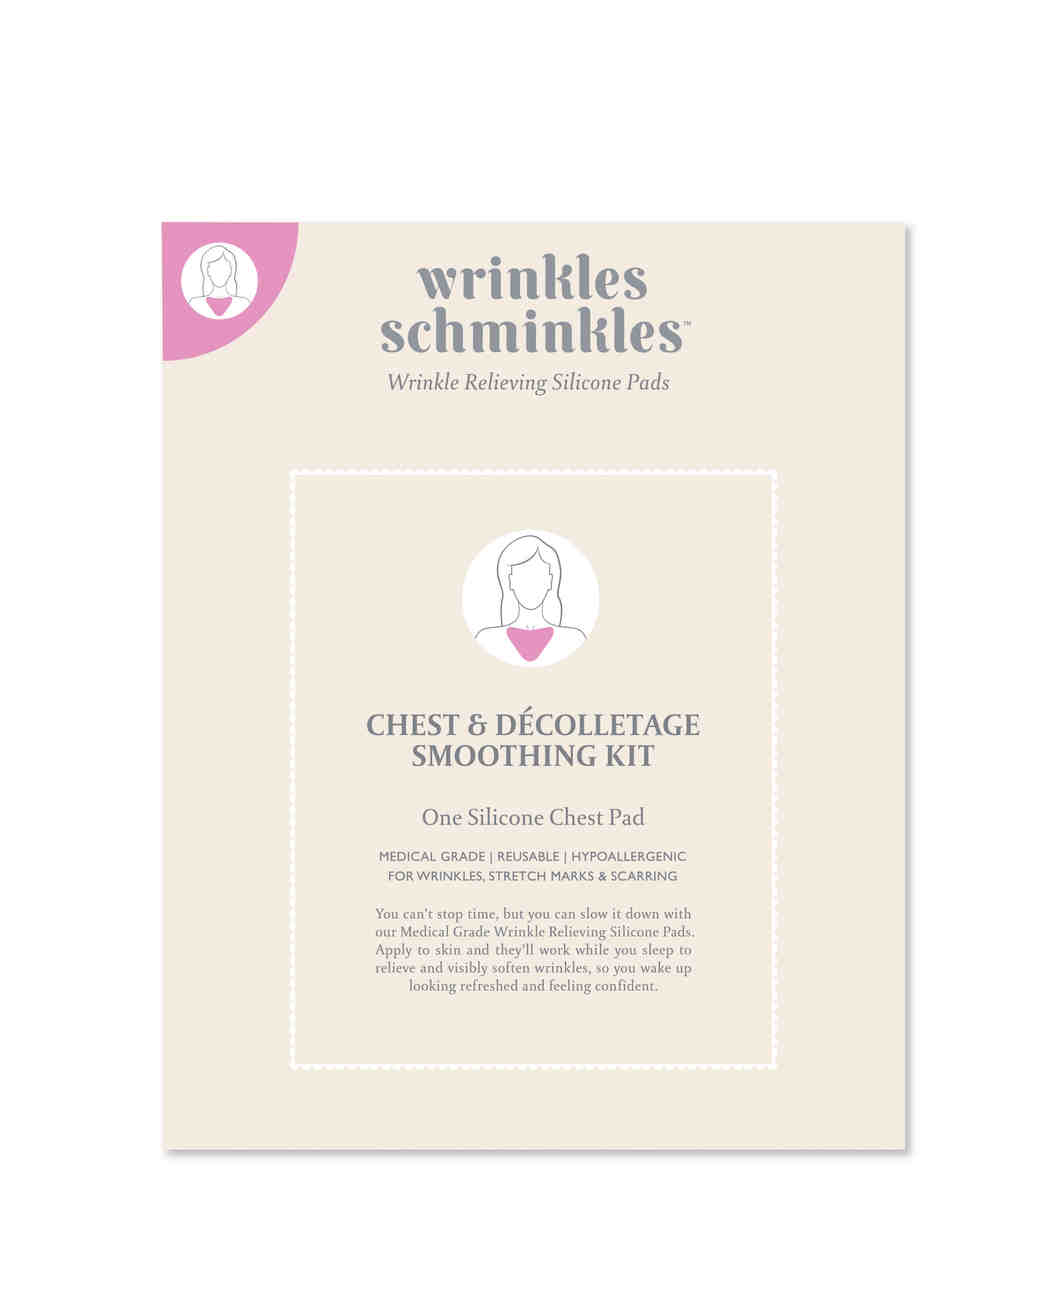 Wrinkles Schminkles Silicone Chest Pad